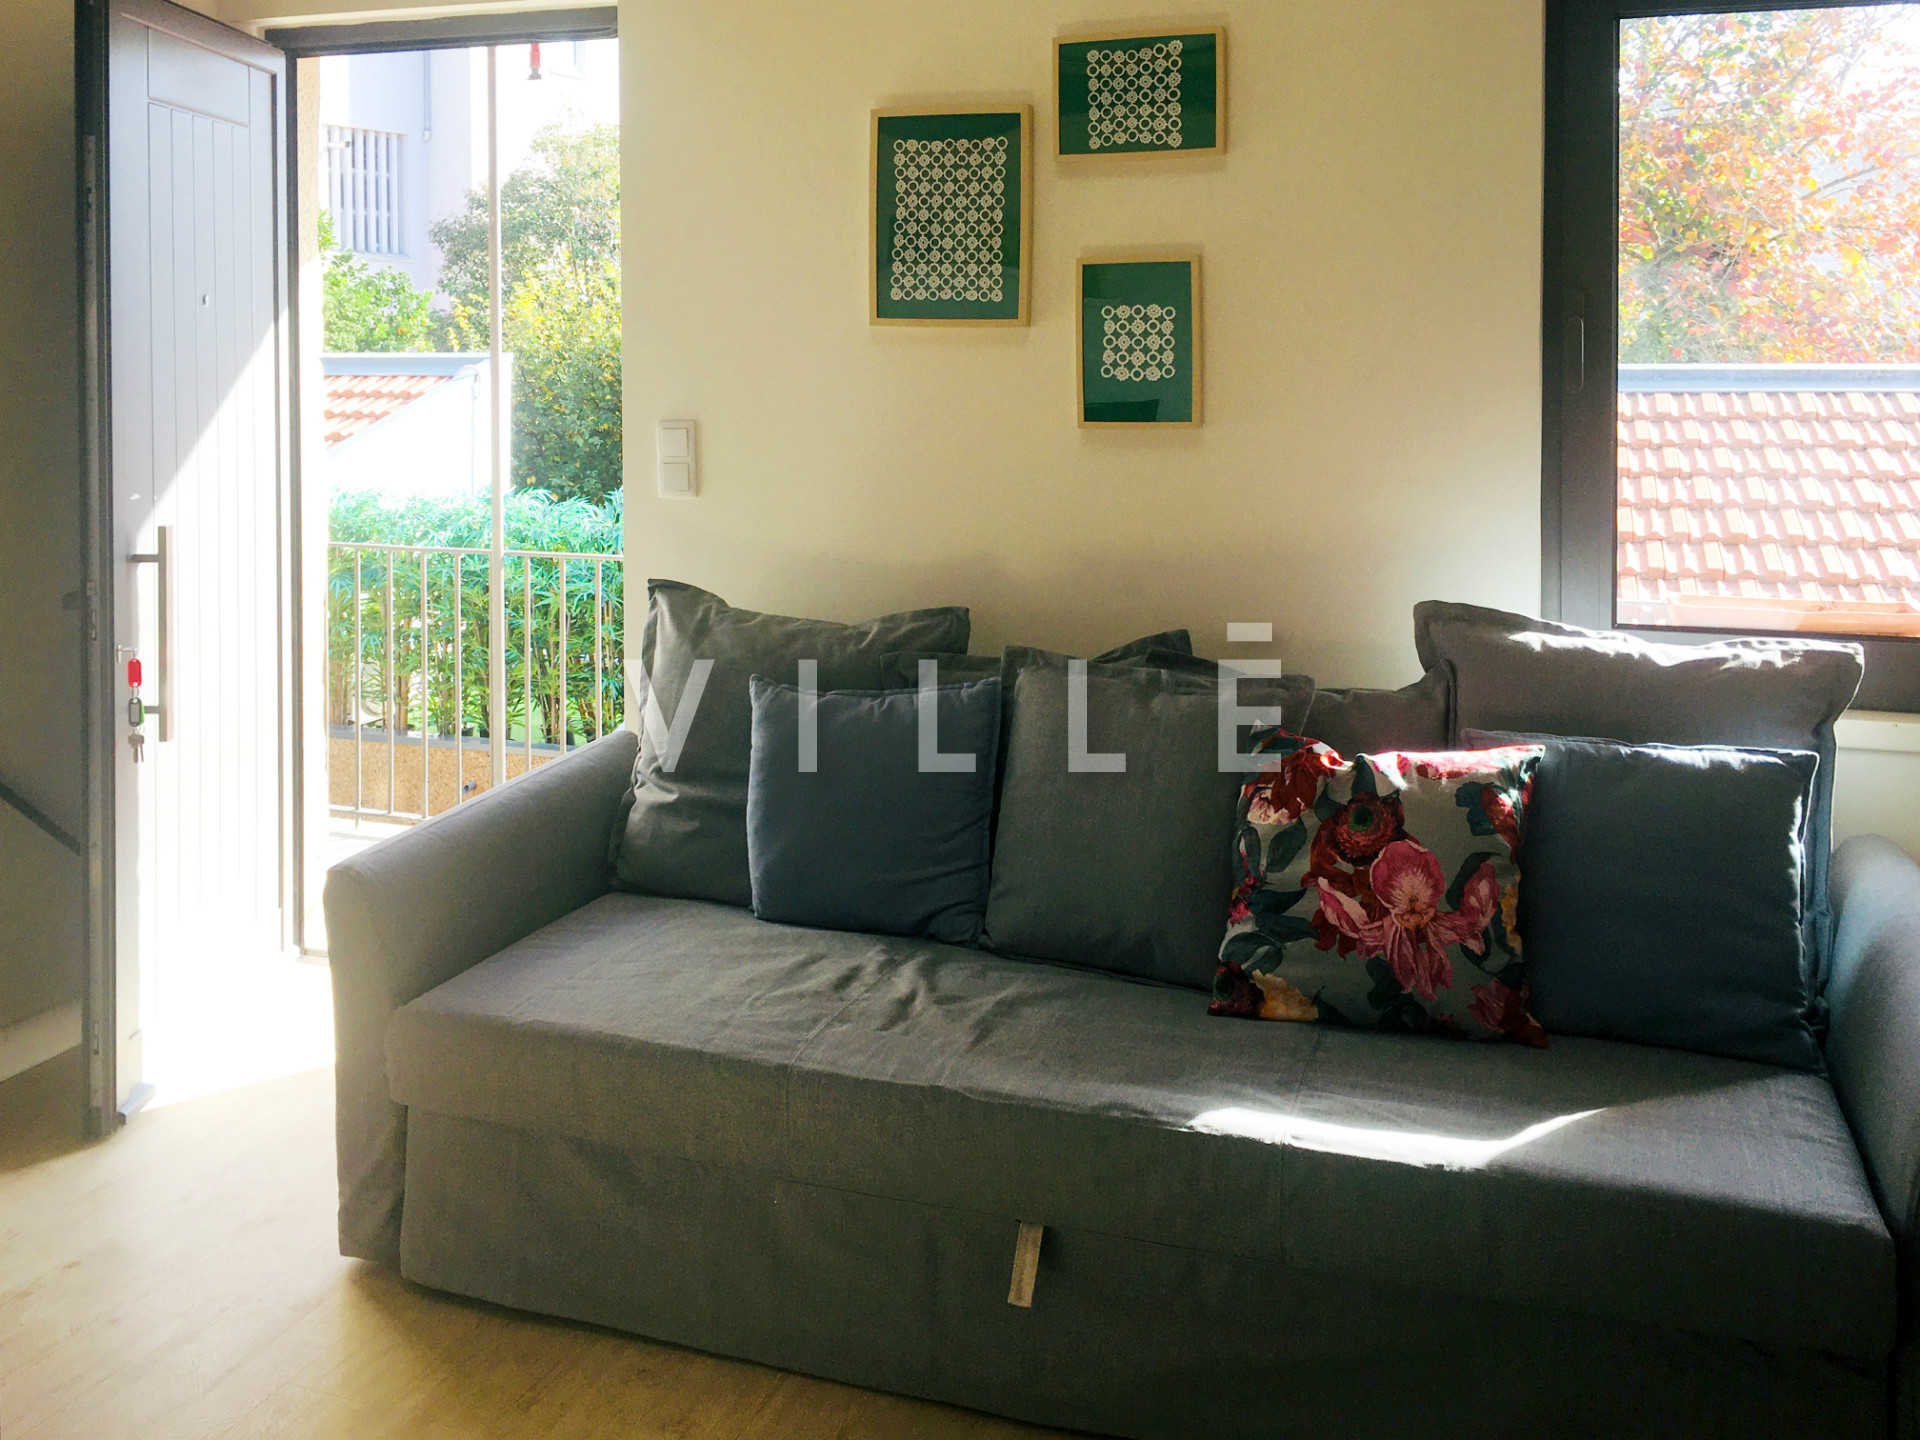 Studio T0 duplex for rental with mezzanine, fully equipped and furnished